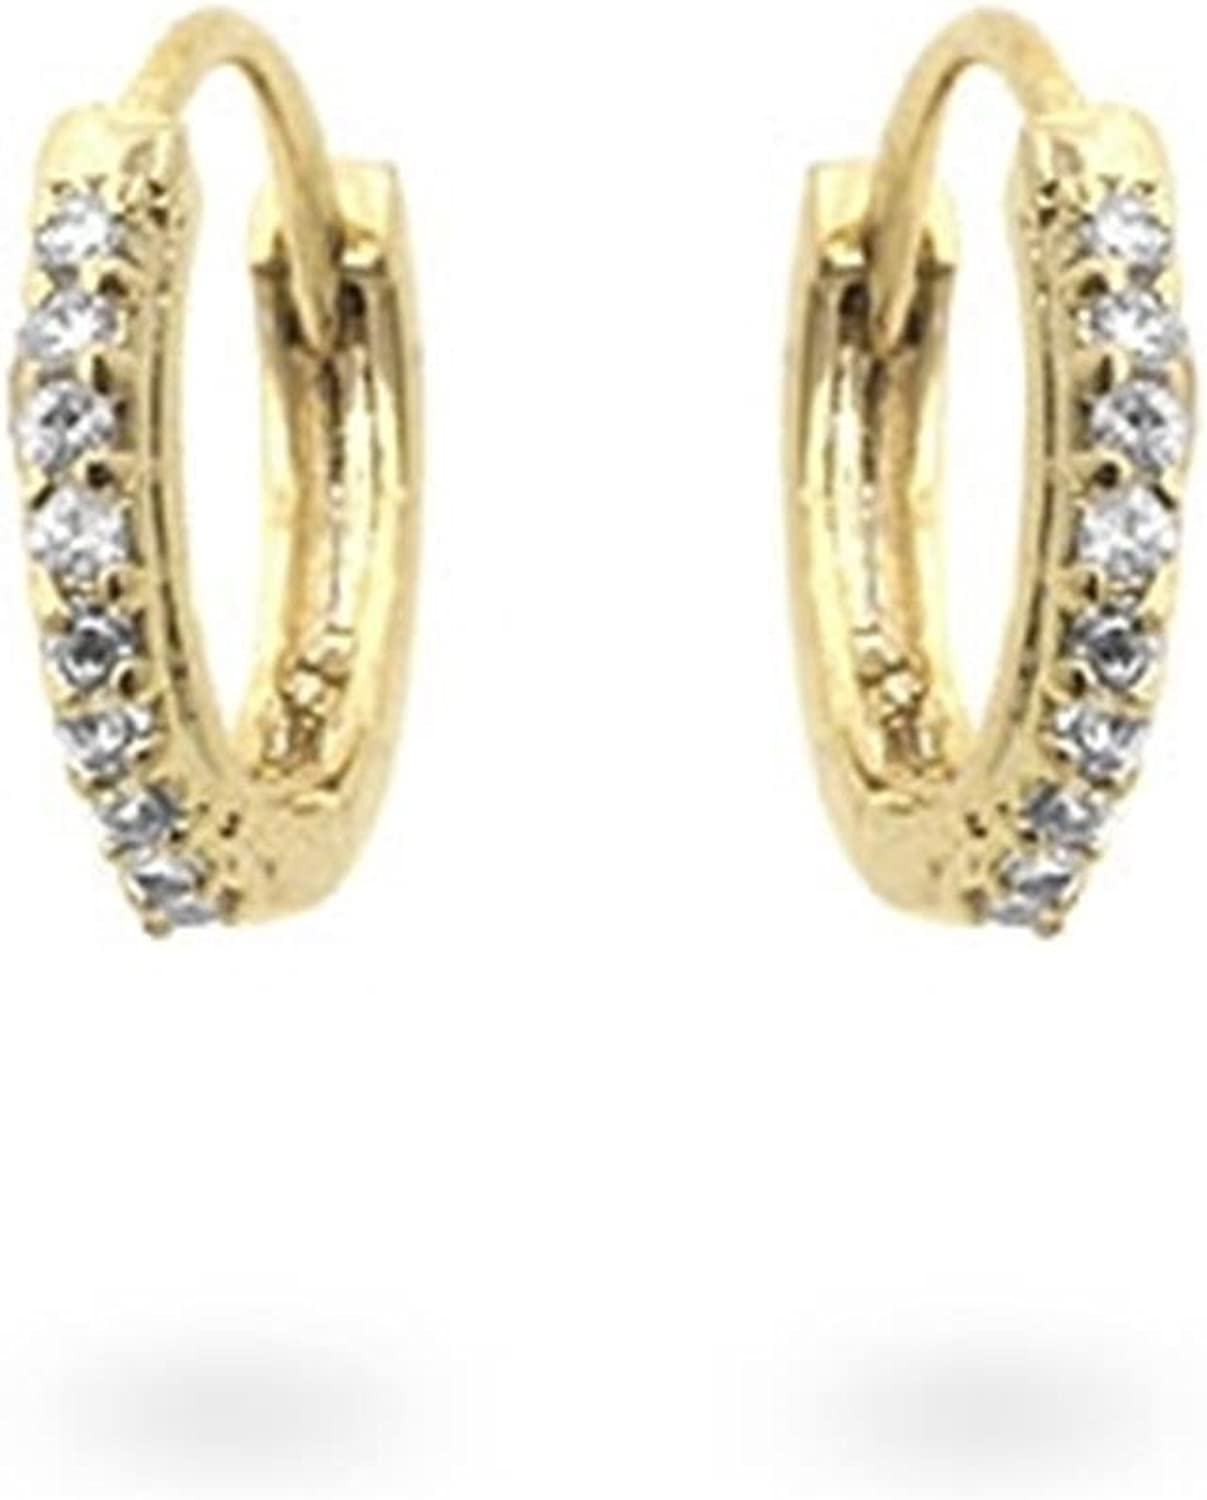 Small Classic gold Tone Hoop Earrings with Clear Cubic Zirconia Studs